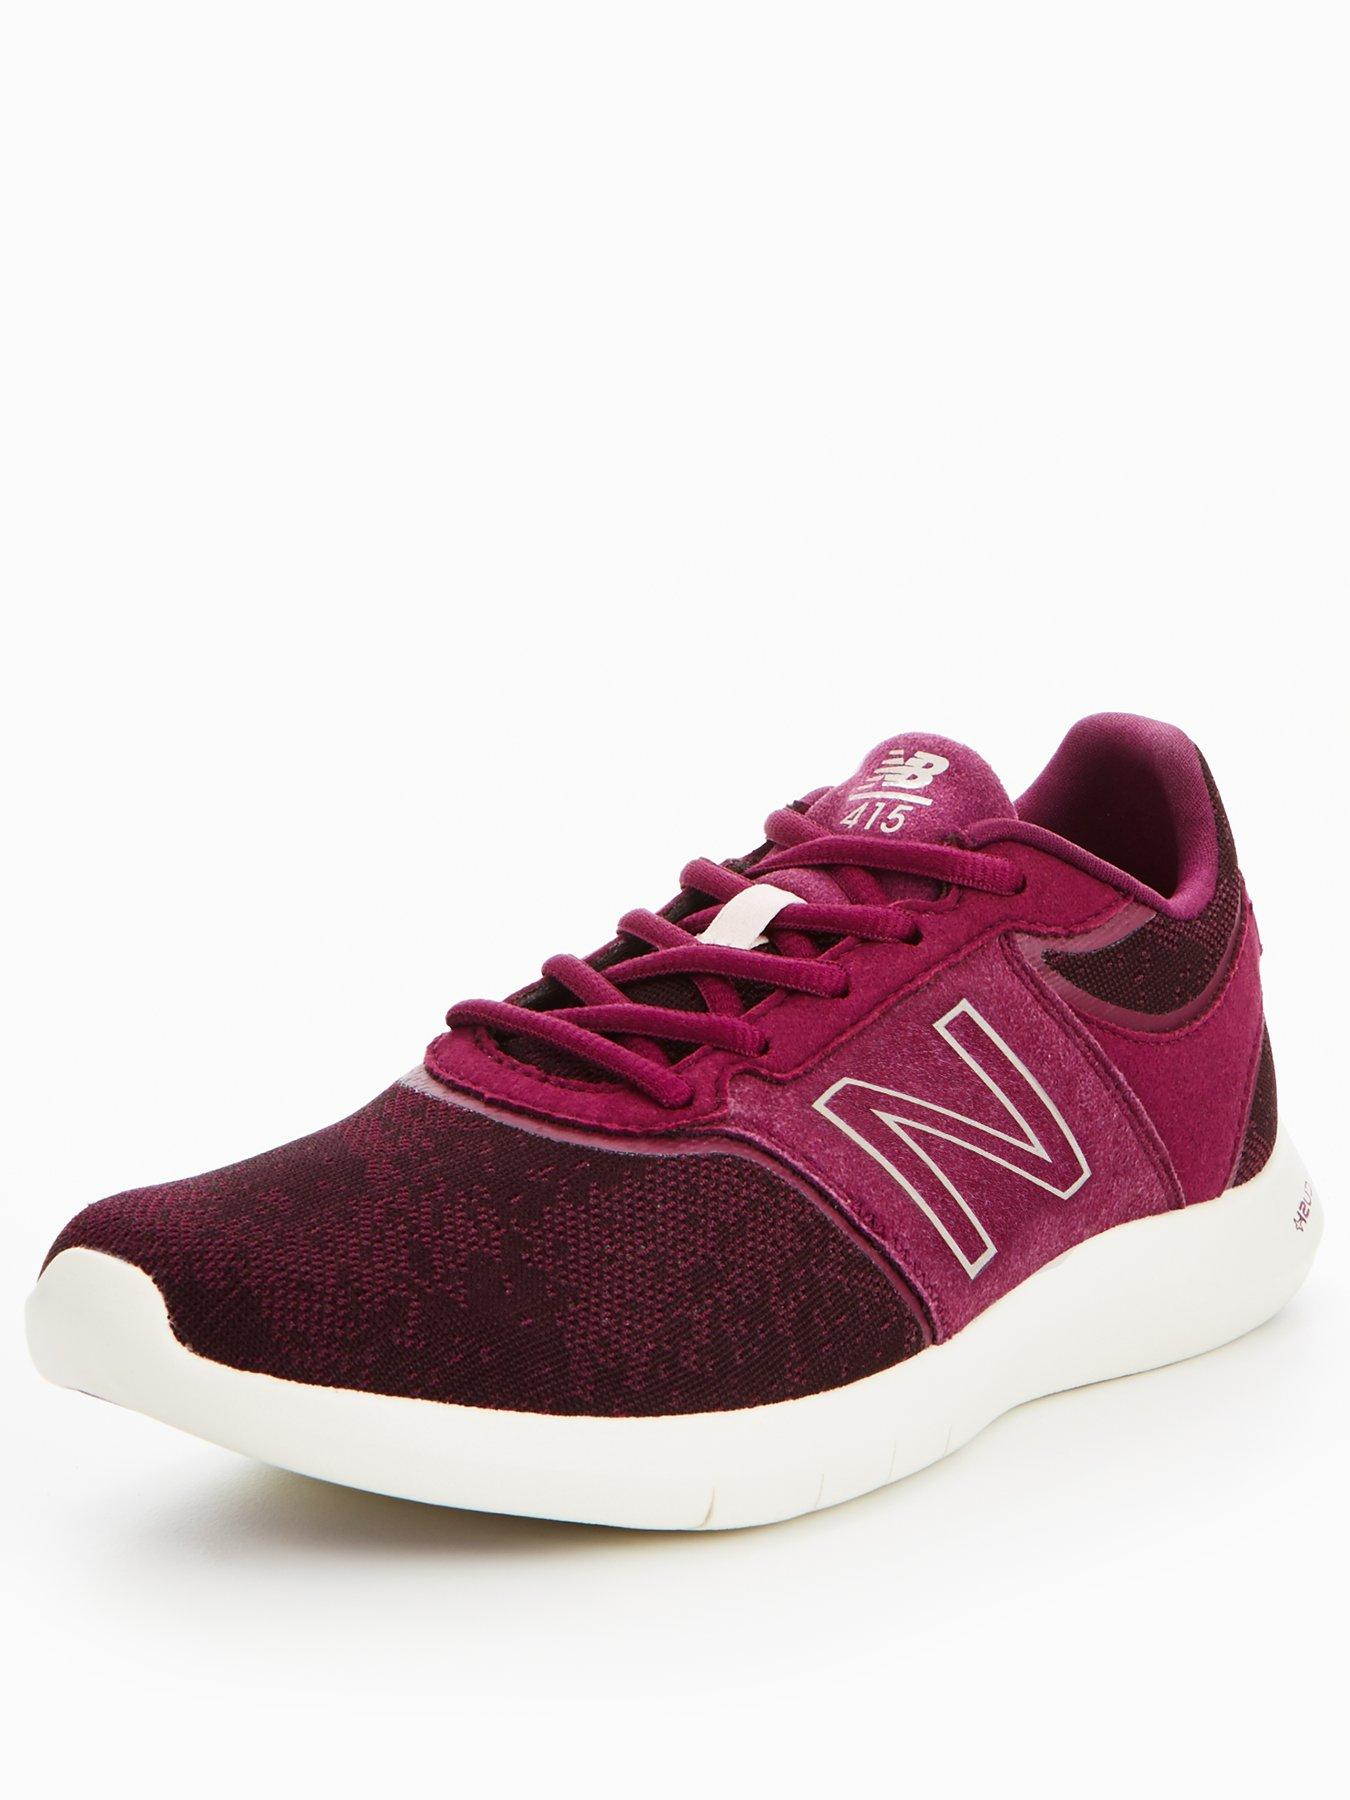 New Balance En Route Wl415v1 1600173527 Women's Shoes New Balance Trainers